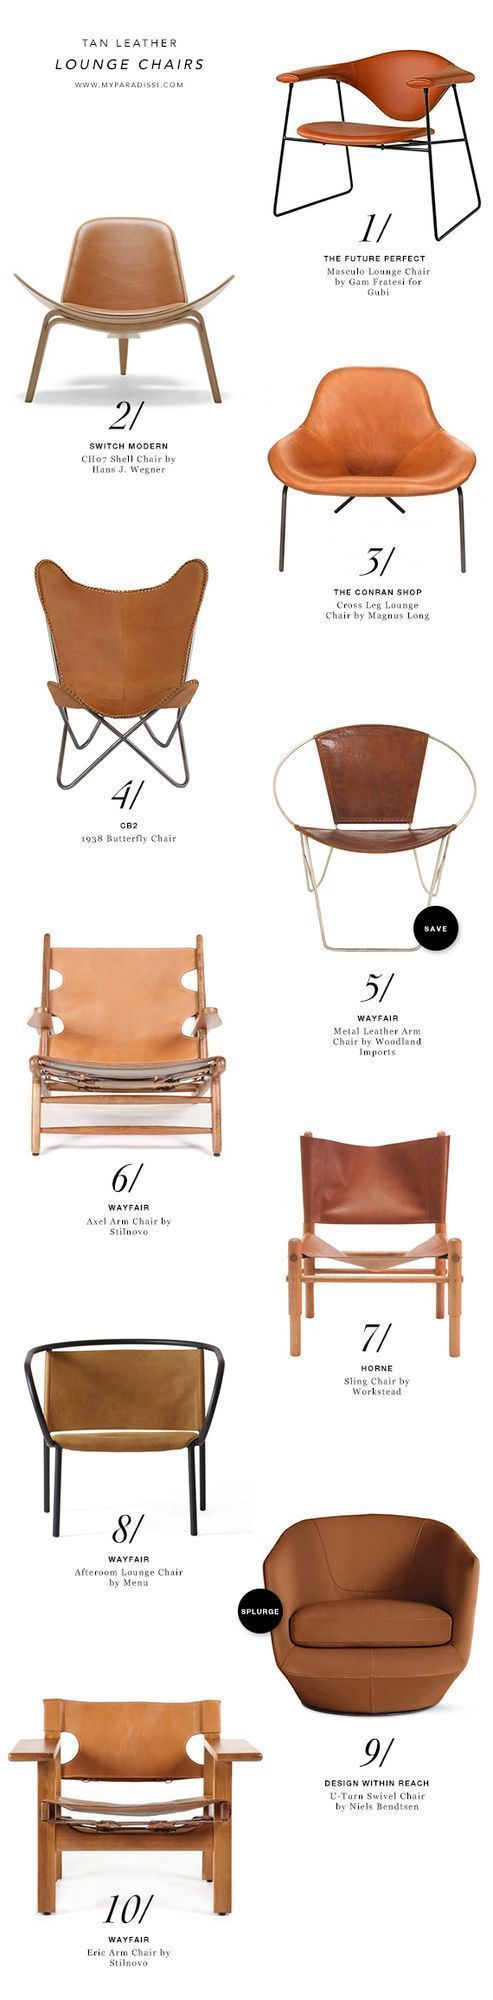 10 Best Tan Leather Lounge Chairs Love The Scandi Feel Of These Simple Classic Chairs Scandi Leather Leather Lounge Leather Lounge Chair Leather Side Chair